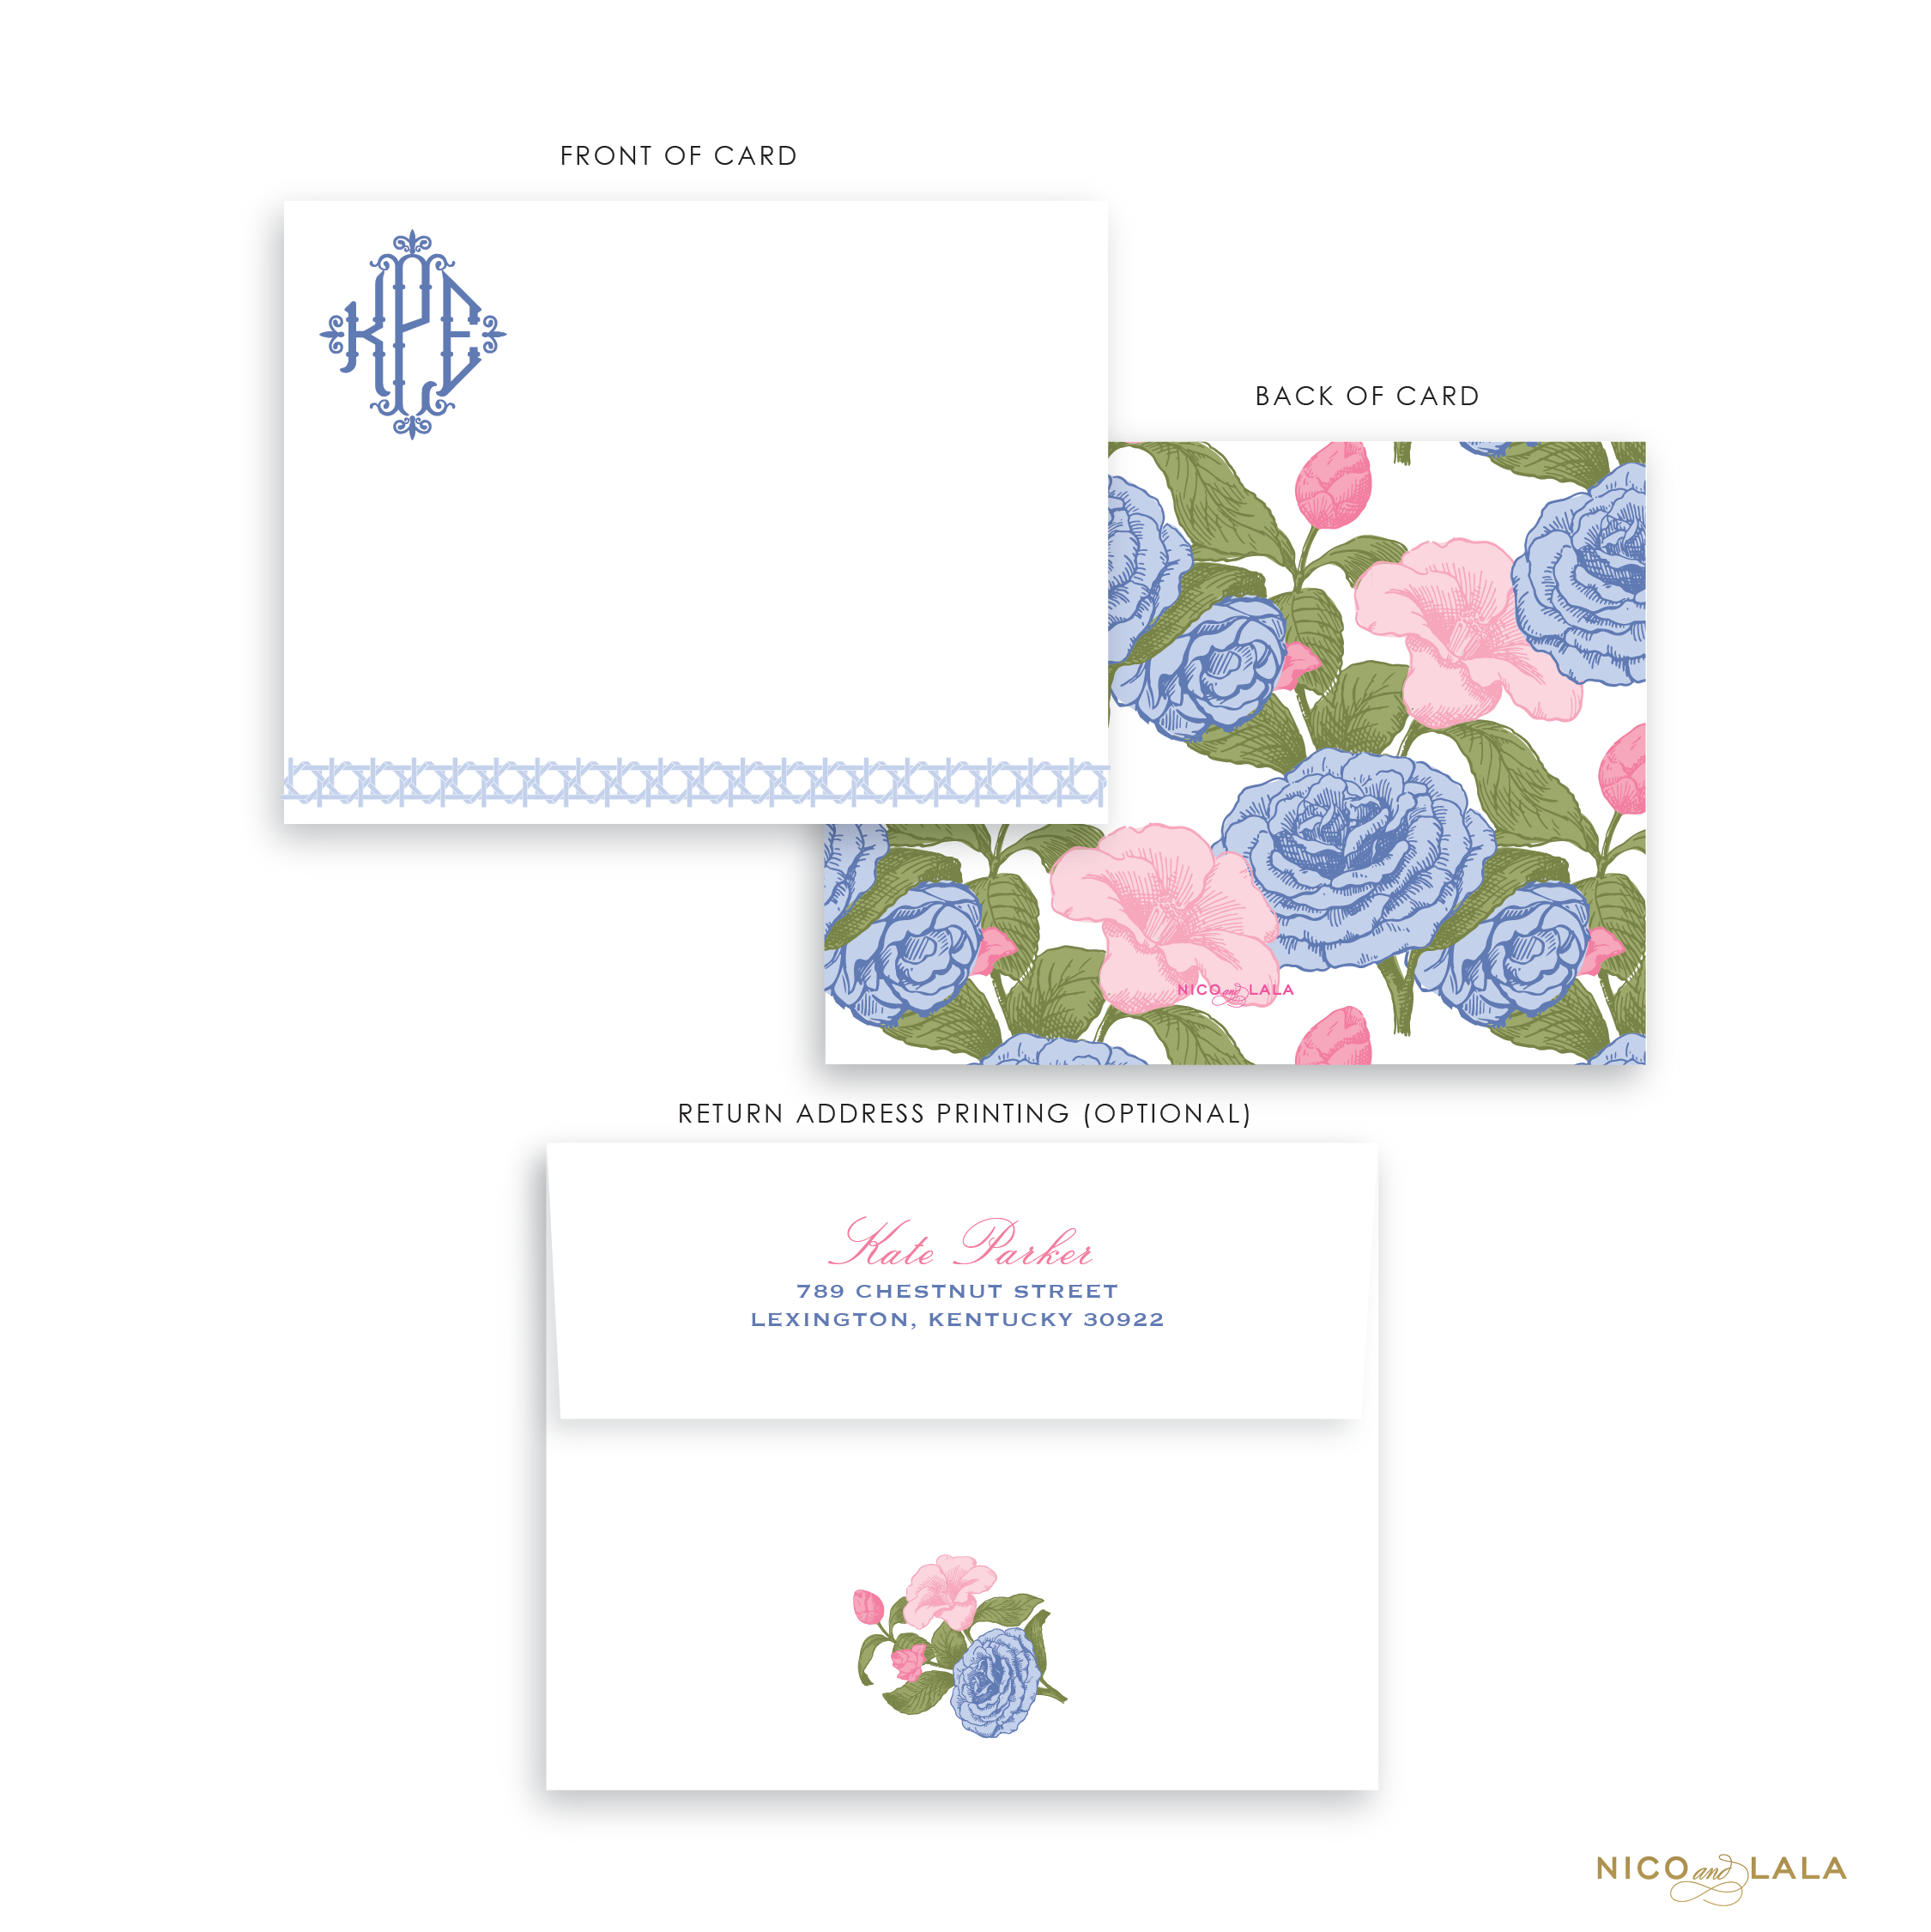 Carolina Cane Stationery